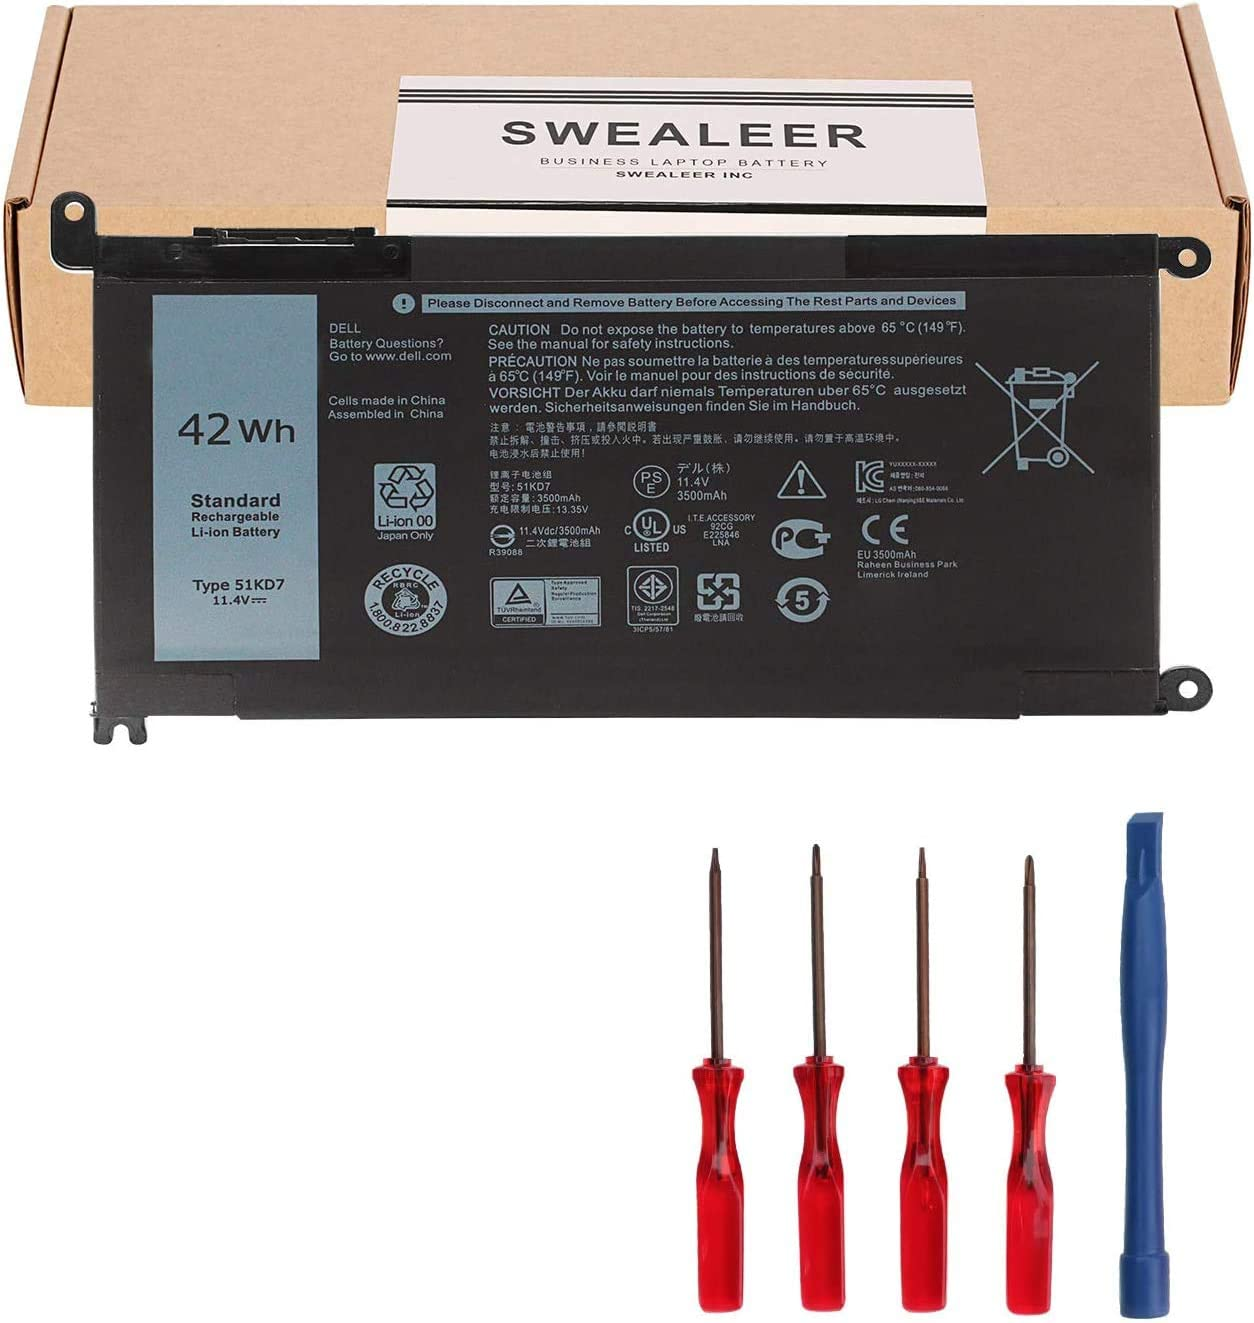 SWEALEER 51KD7 Laptop Battery Compatible with Dell Chromebook 11 3180 3189 5190 3181 2-in-1 Series P28T001 Y07HK FY8XM 0FY8XM [11.4V 42Wh 3-Cell 3500mAh]